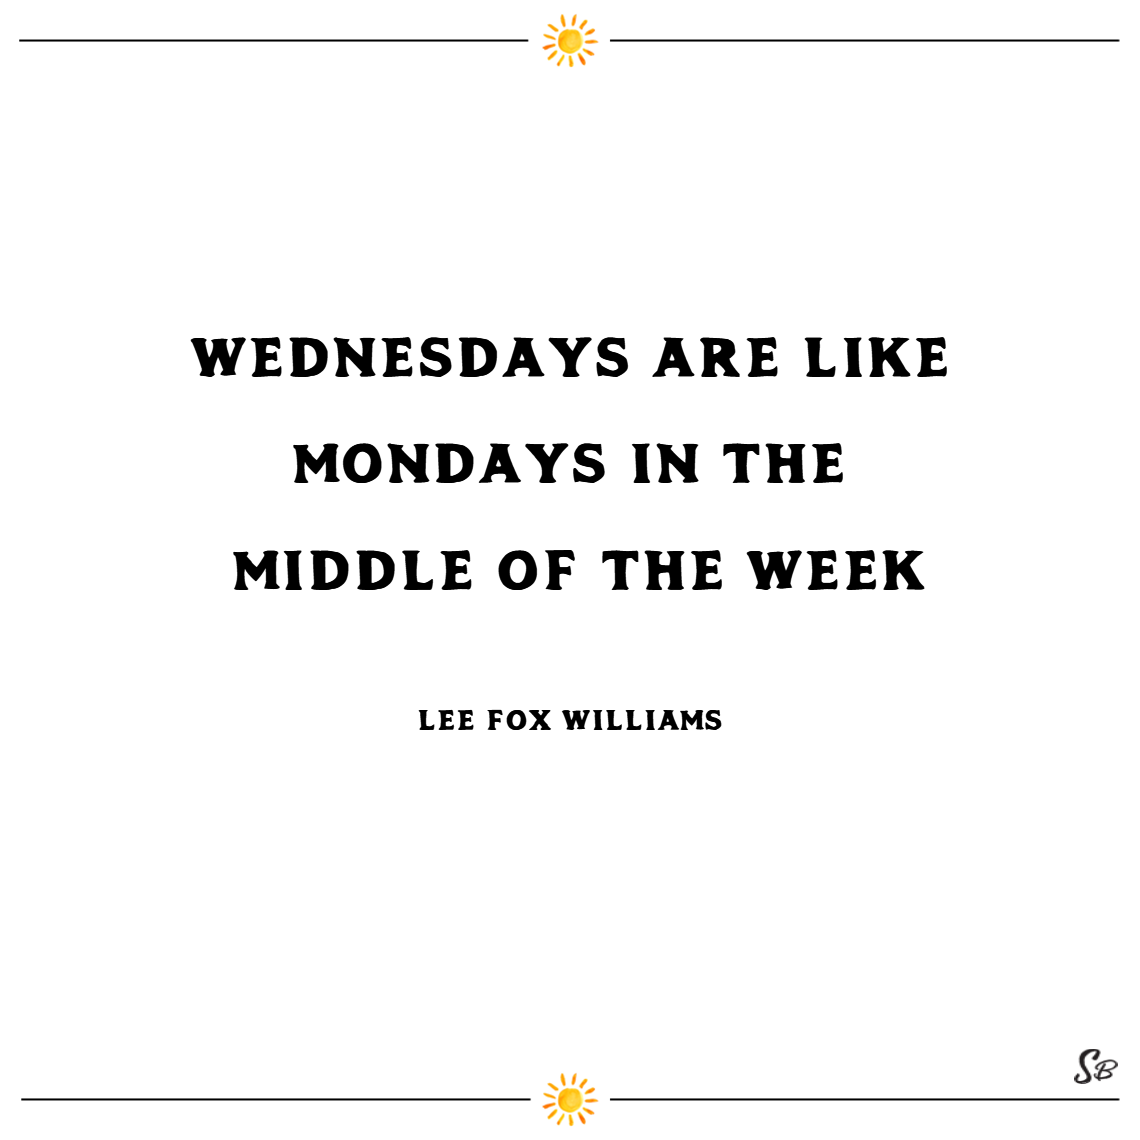 Wednesdays are like mondays in the middle of the week! – lee fox williams